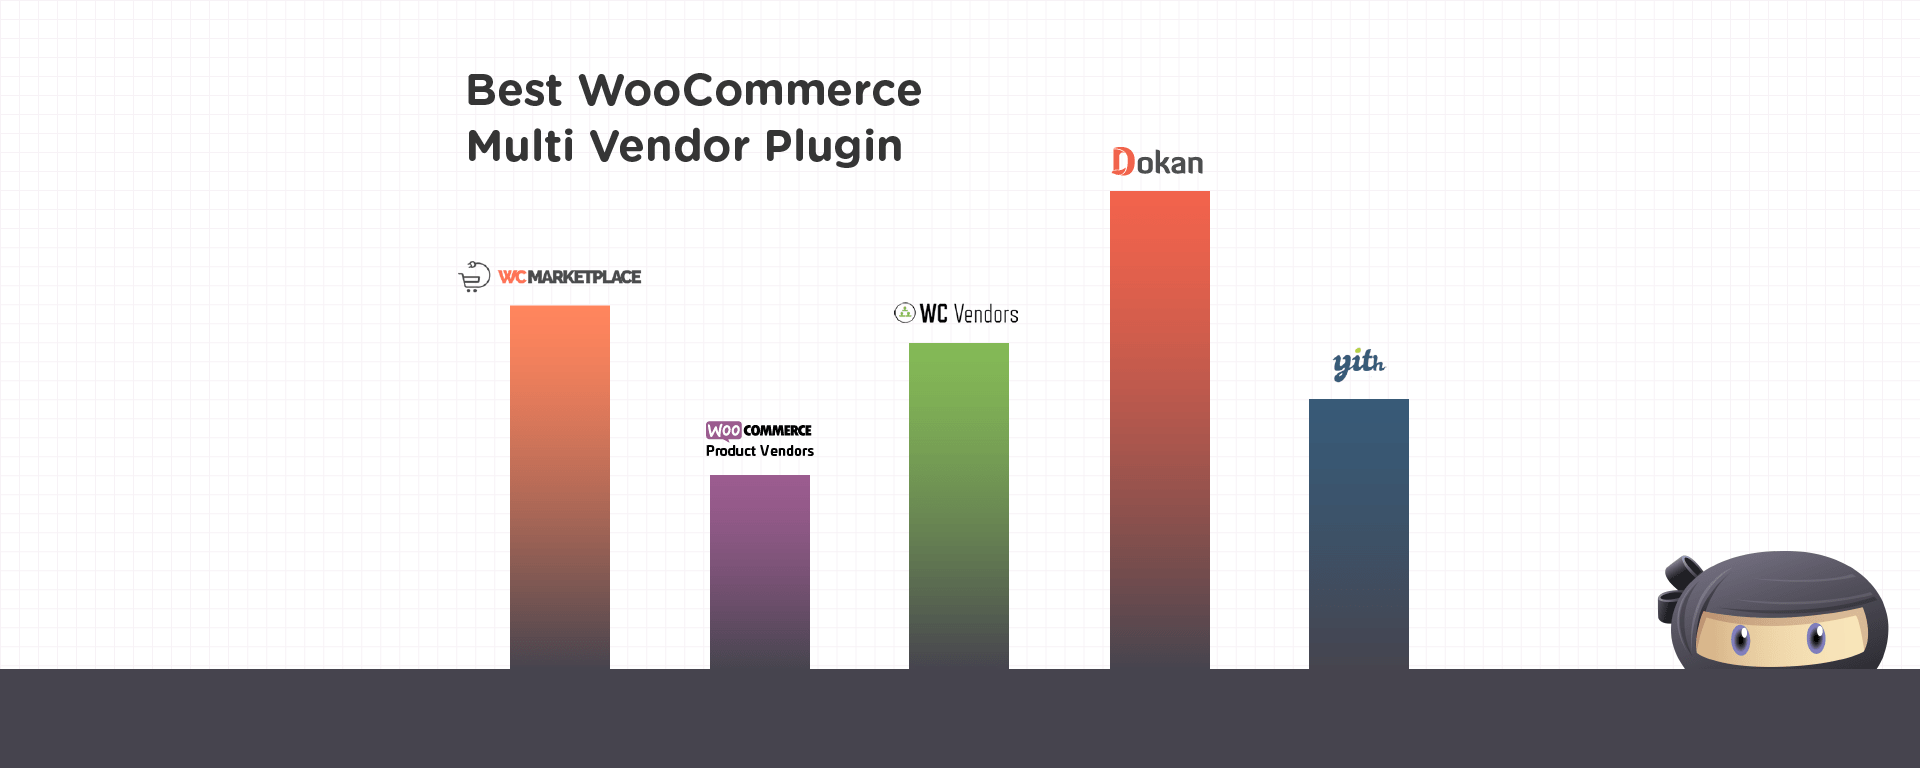 Best Multi-vendor Plugins: Dokan vs WC Vendor vs WC Marketplace